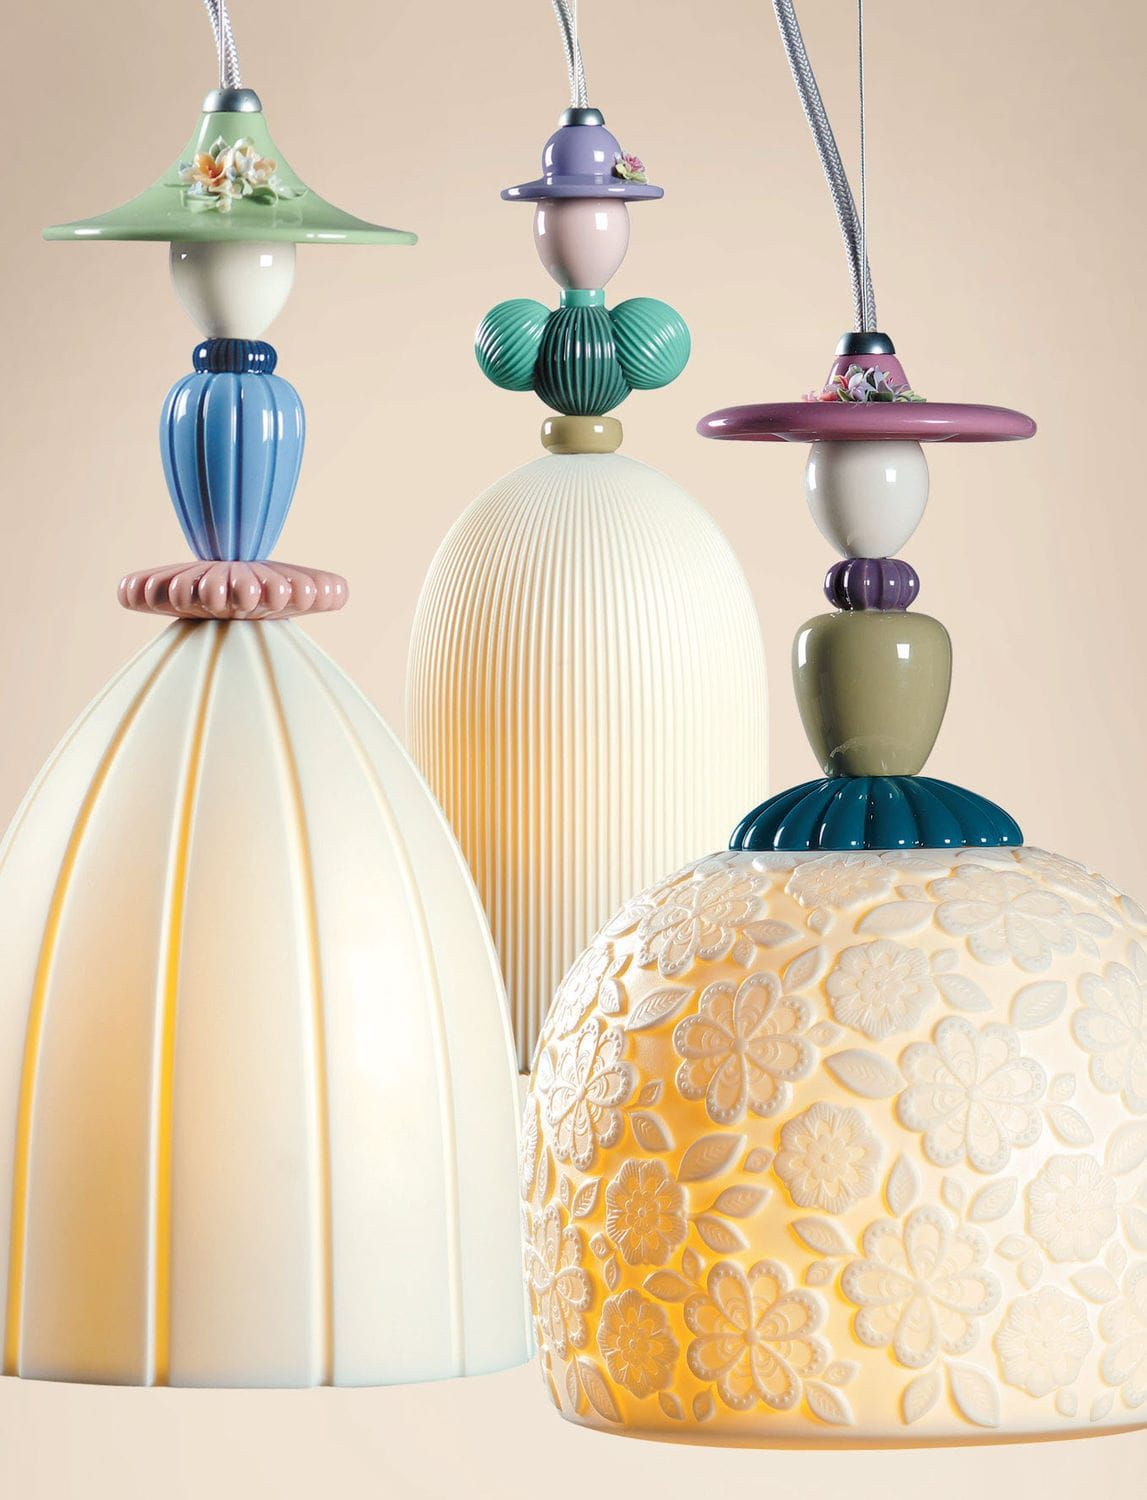 Porcelain handmade chandeliers google search chandeliers and porcelain handmade chandeliers google search arubaitofo Image collections